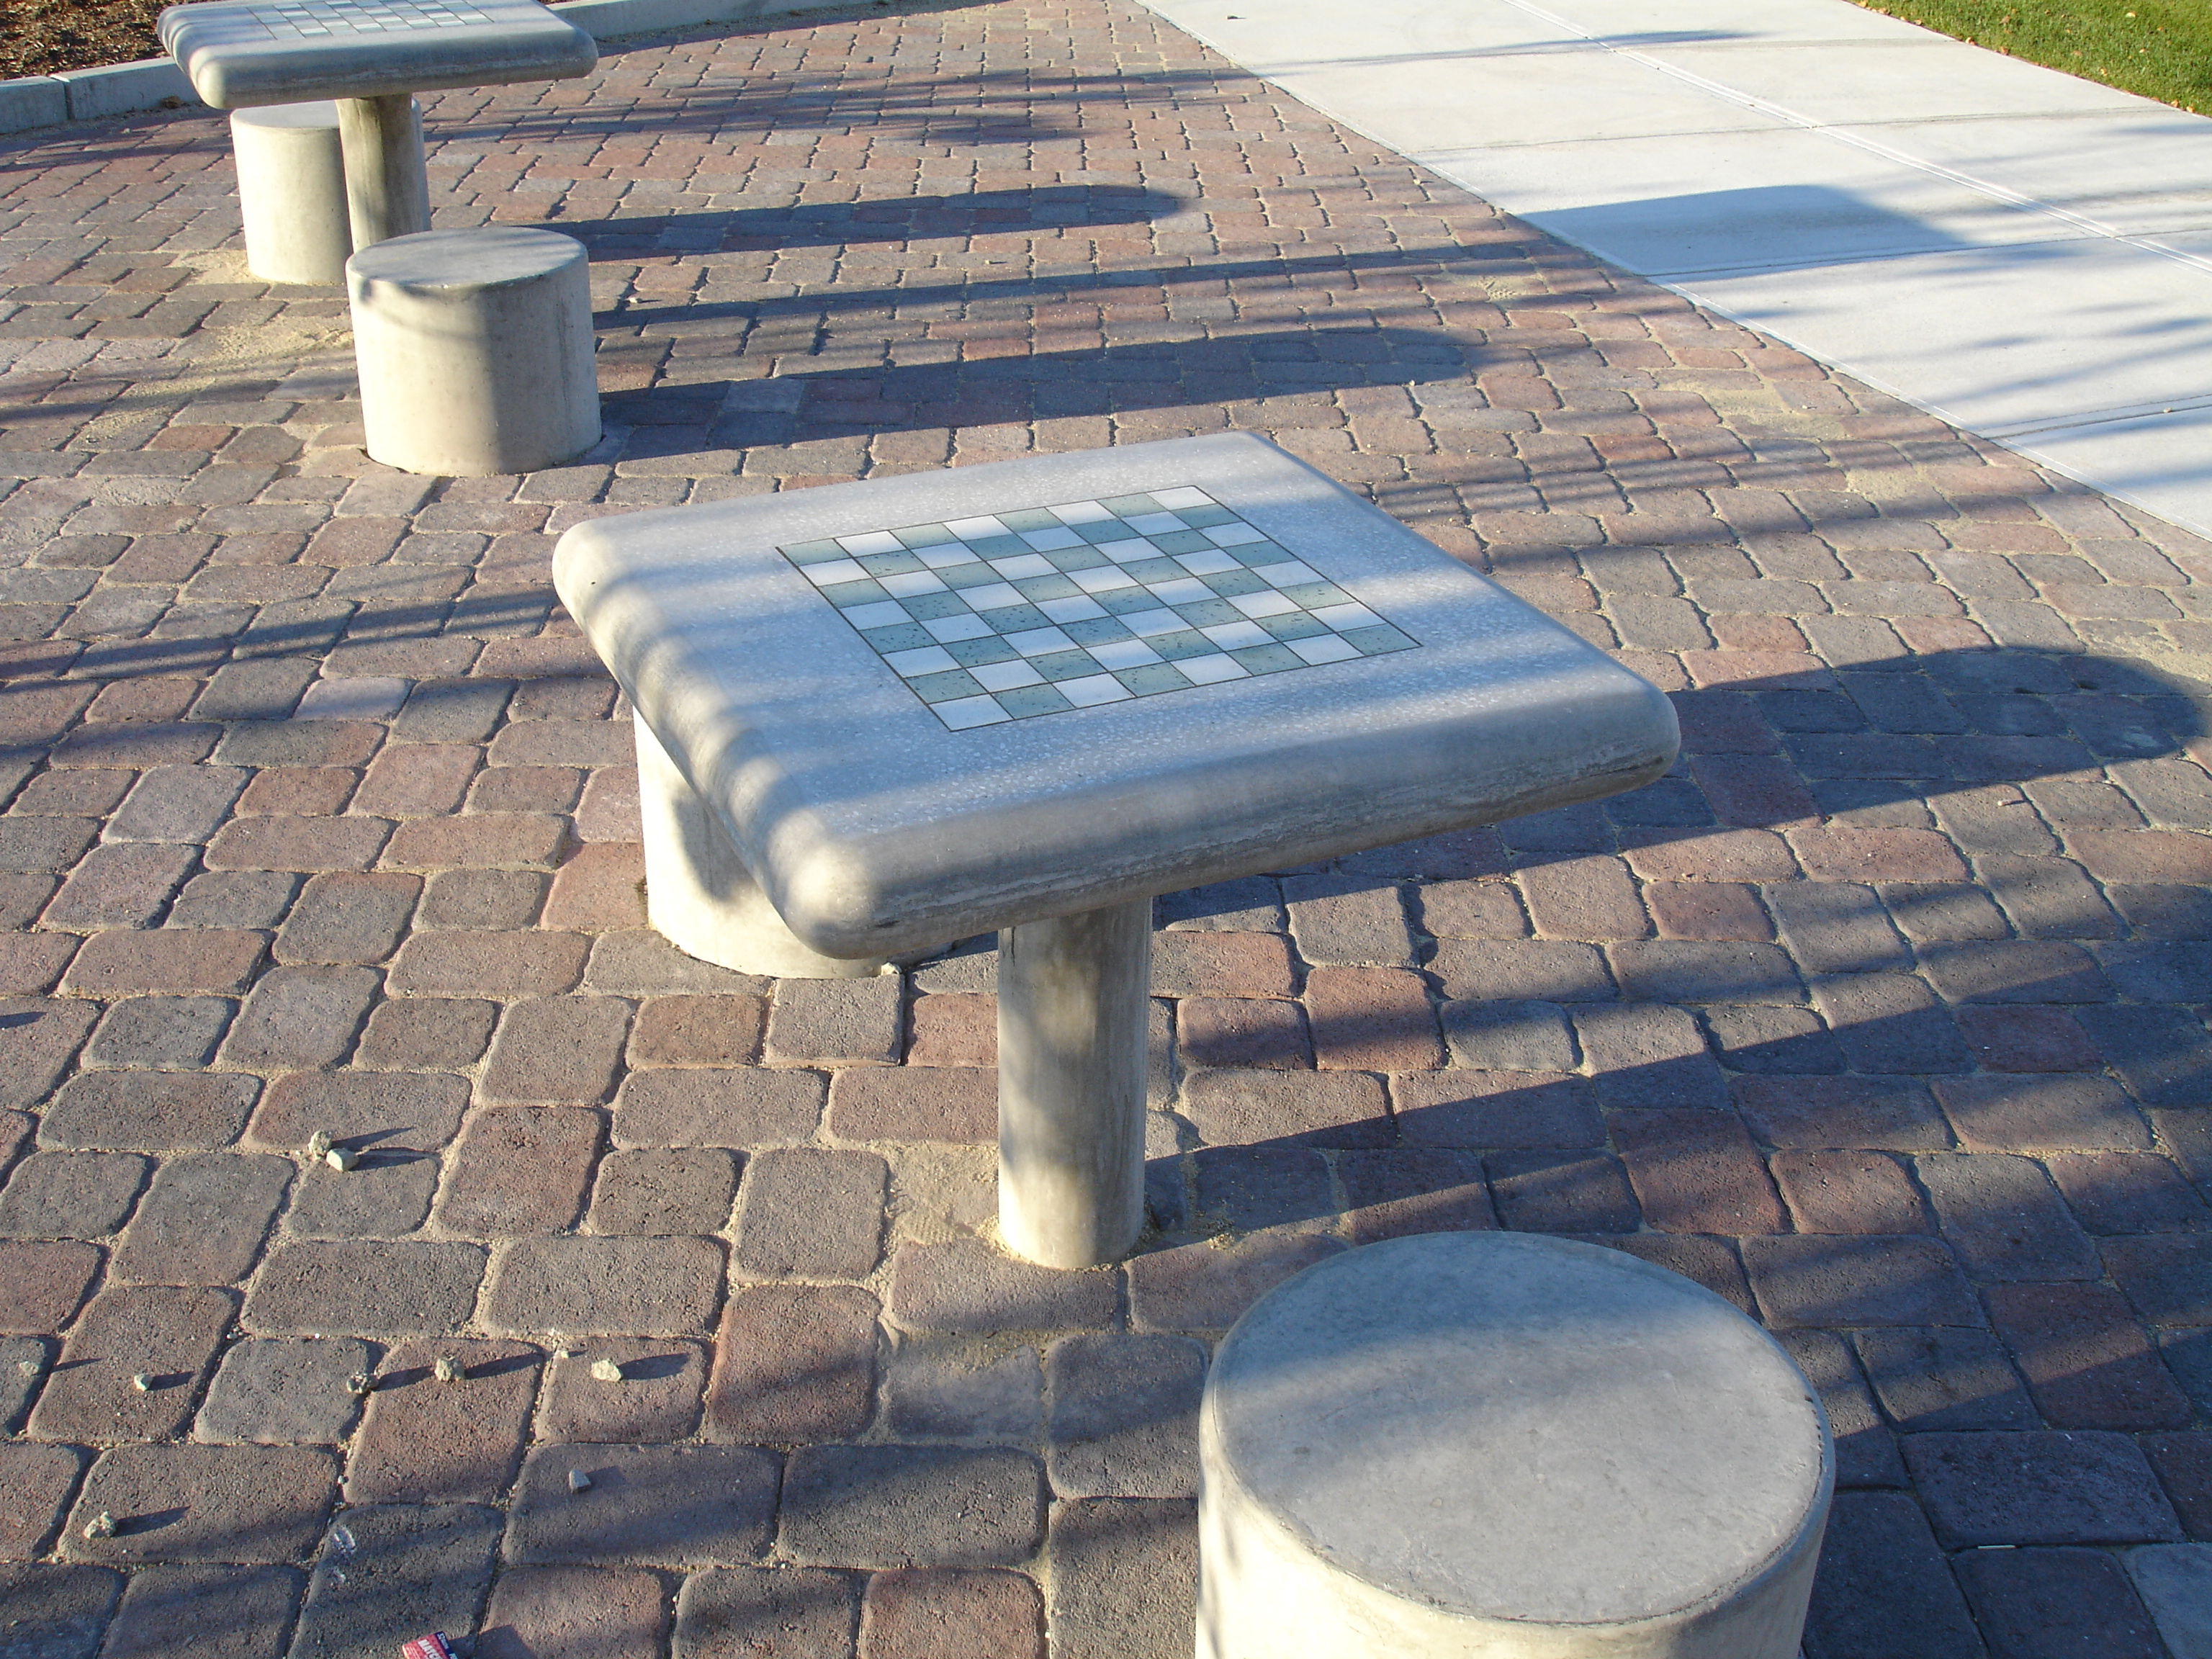 checkboard tables at Bay State Commons park